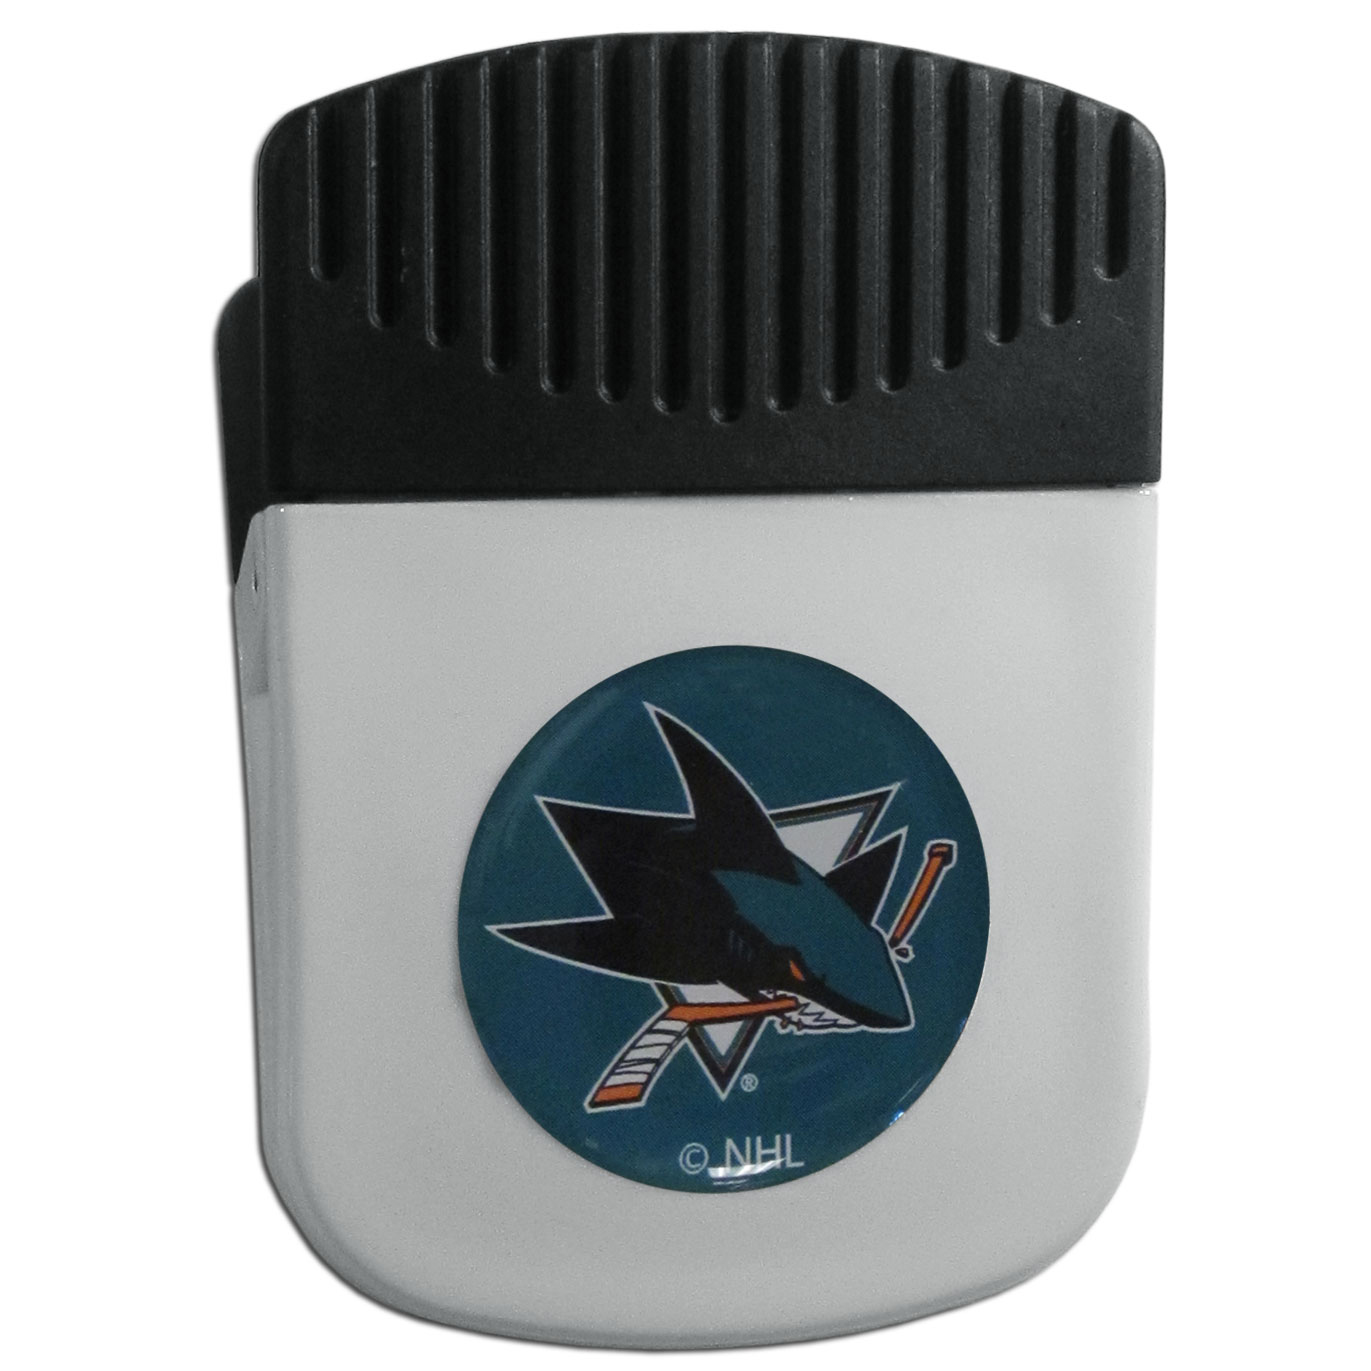 San Jose Sharks® Chip Clip Magnet - Use this attractive clip magnet to hold memos, photos or appointment cards on the fridge or take it down keep use it to clip bags shut. The magnet features a domed San Jose Sharks® logo.